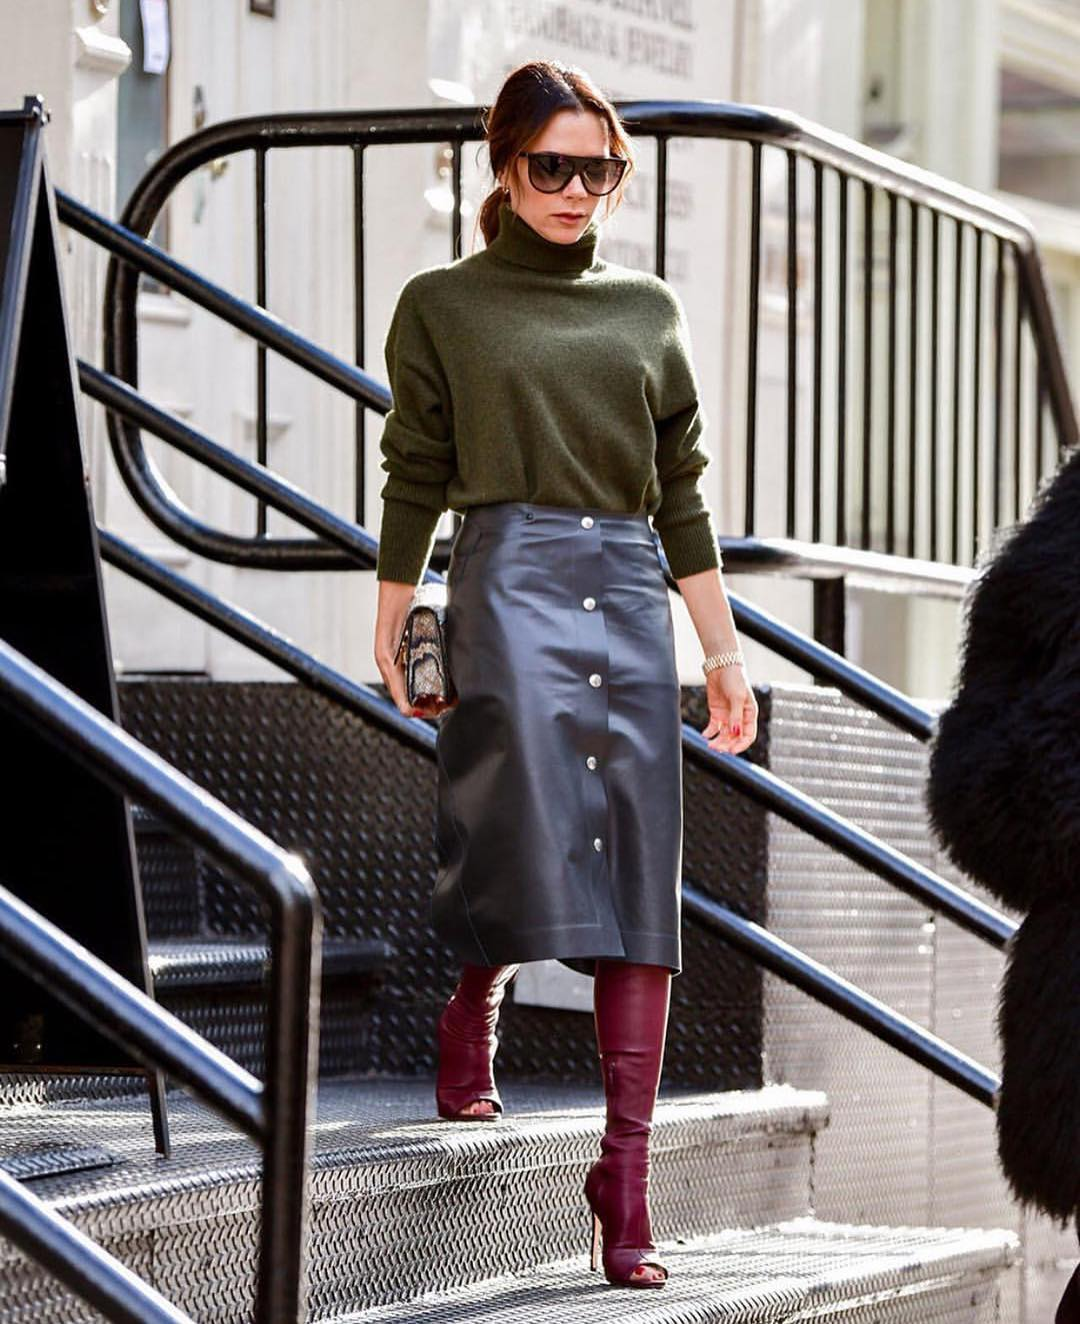 Front Buttoned Midi Leather Skirt With Olive Green Turtleneck For Fall Days 2020